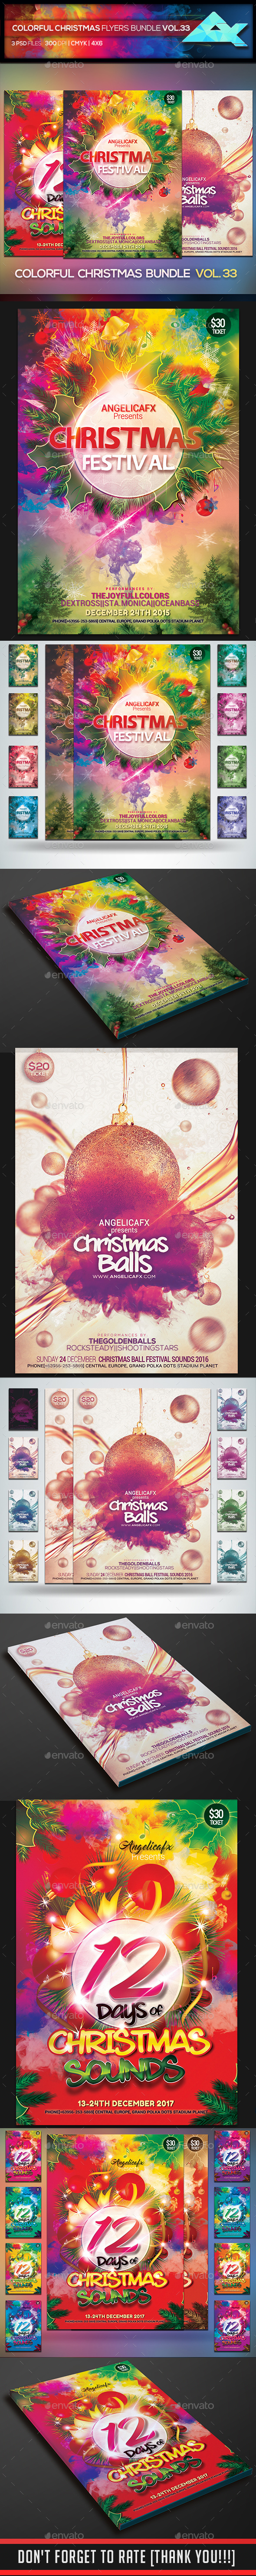 Christmas Colors Flyers Bundle Vol. 33 - Flyers Print Templates